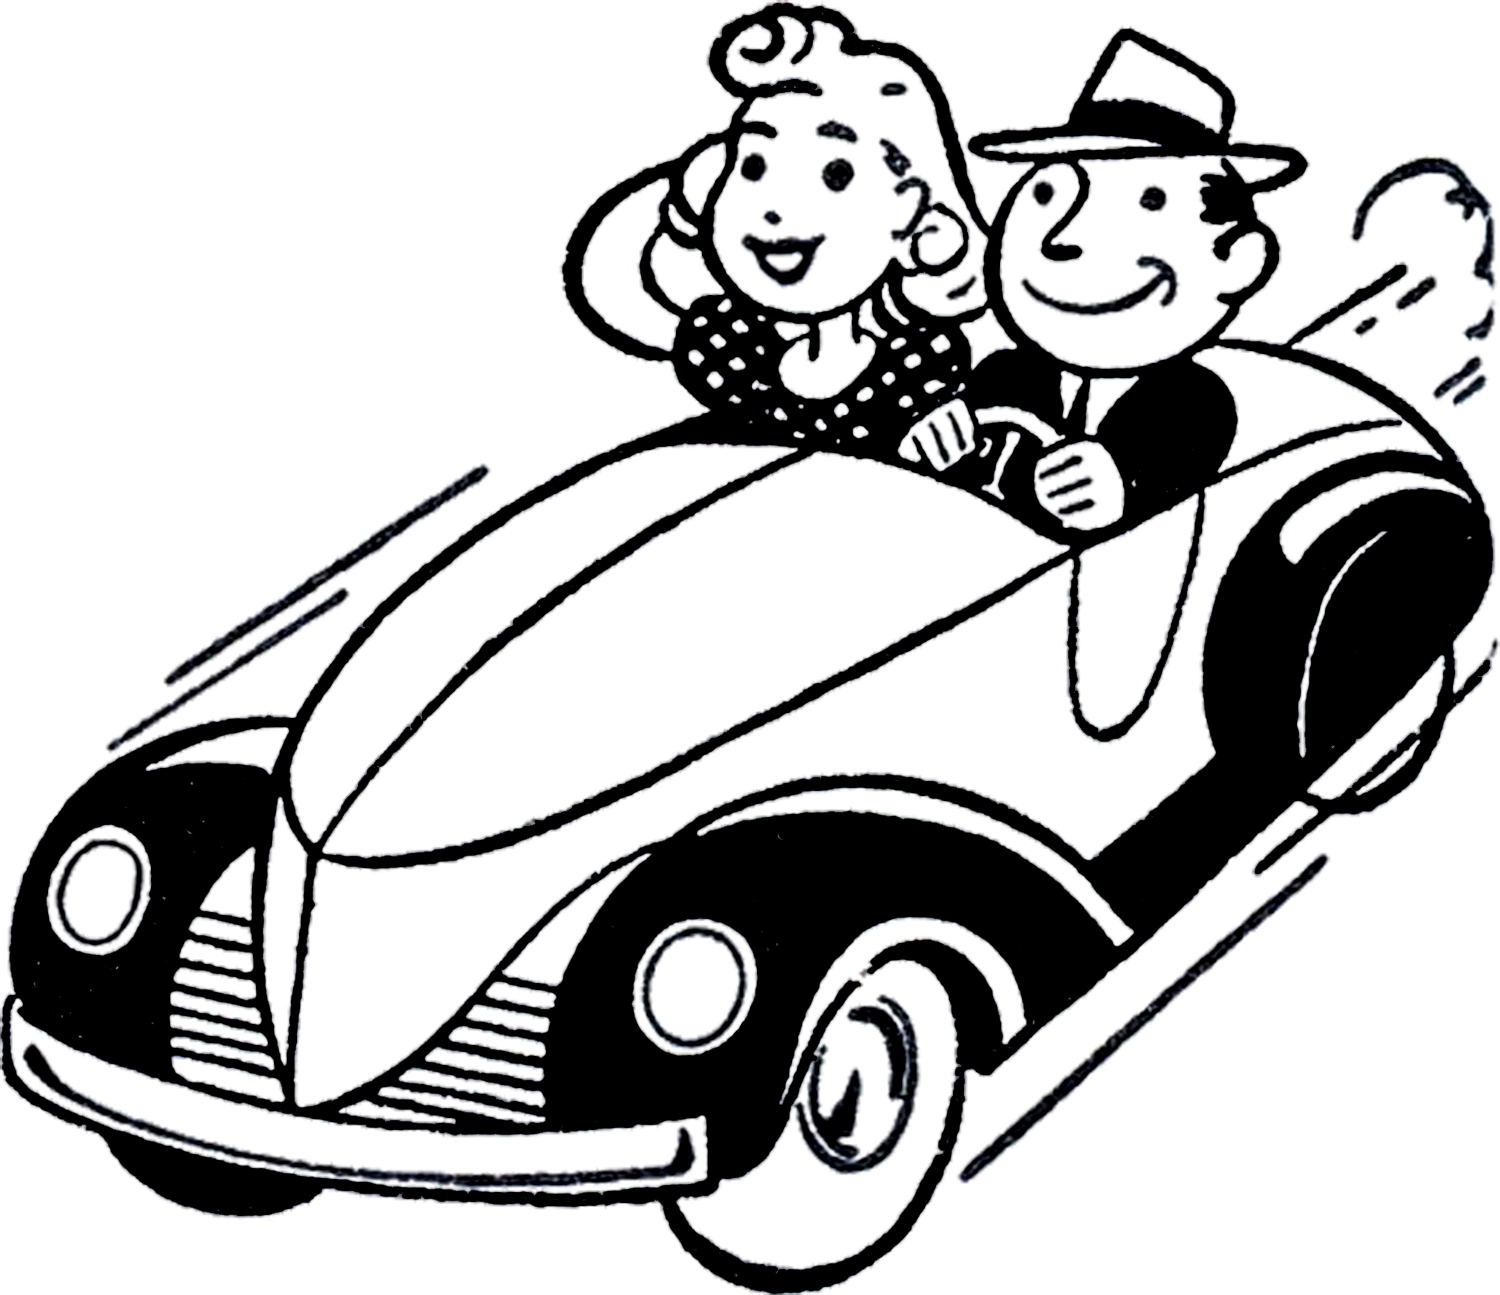 Vintage roadtrip clipart black and white download Classic Car Graphics Cliparts - Free Clipart black and white download